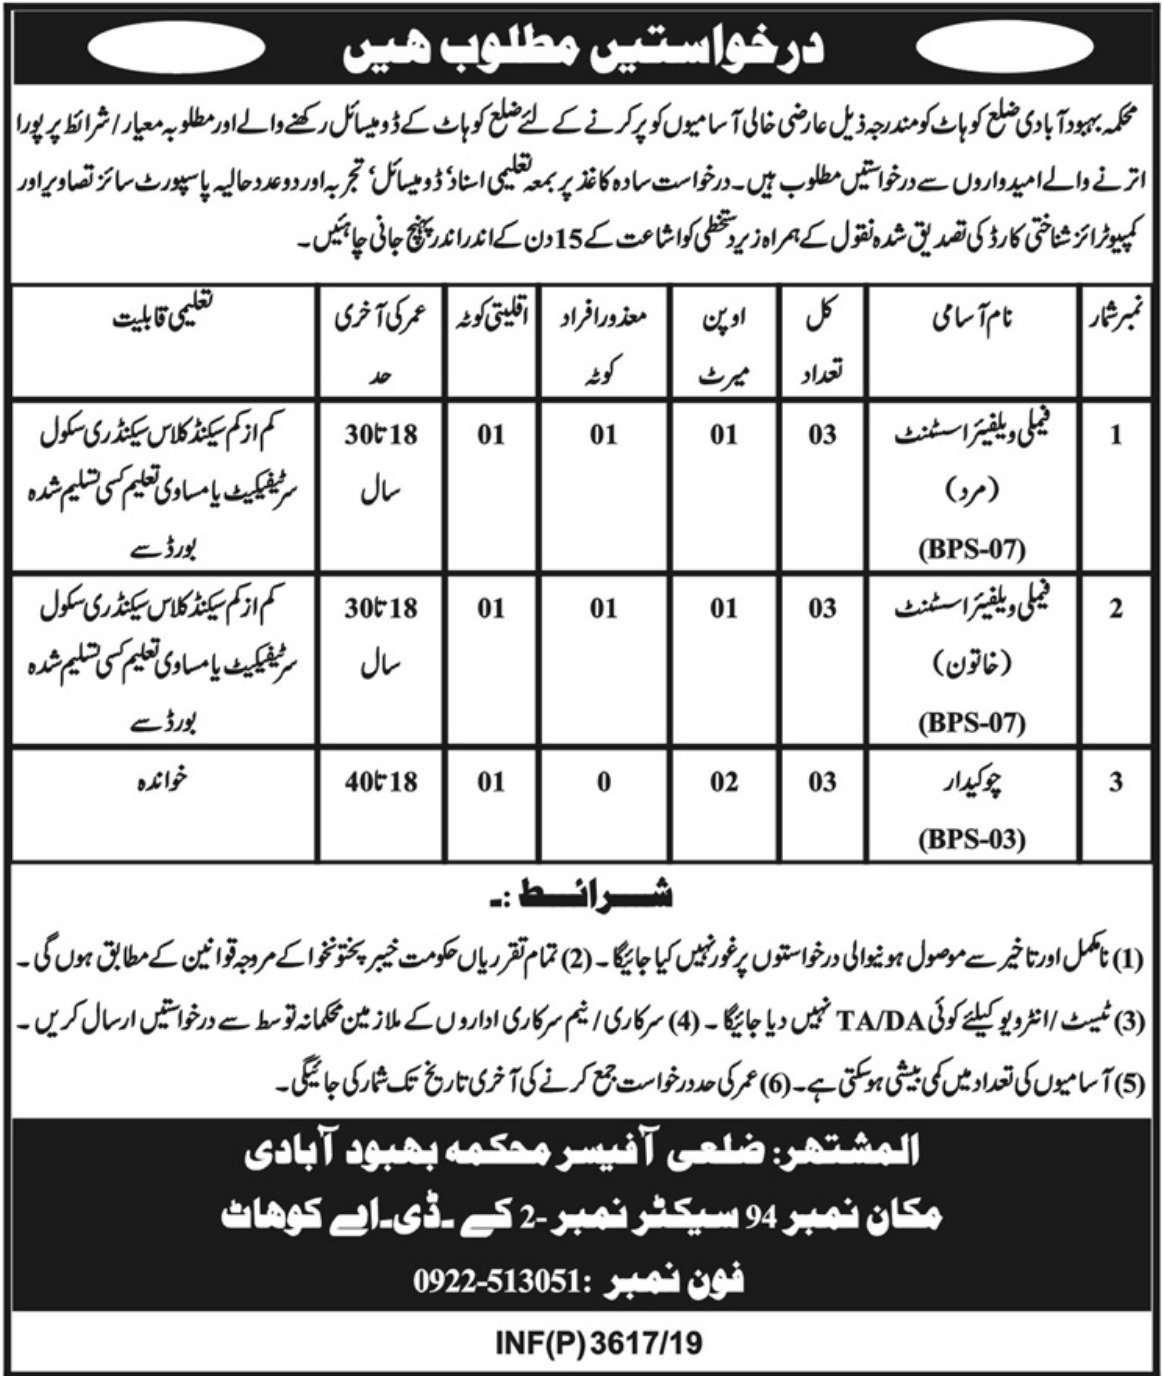 Population Welfare Department Khyber Pakhtunkhwa Jobs 2019 Kohat